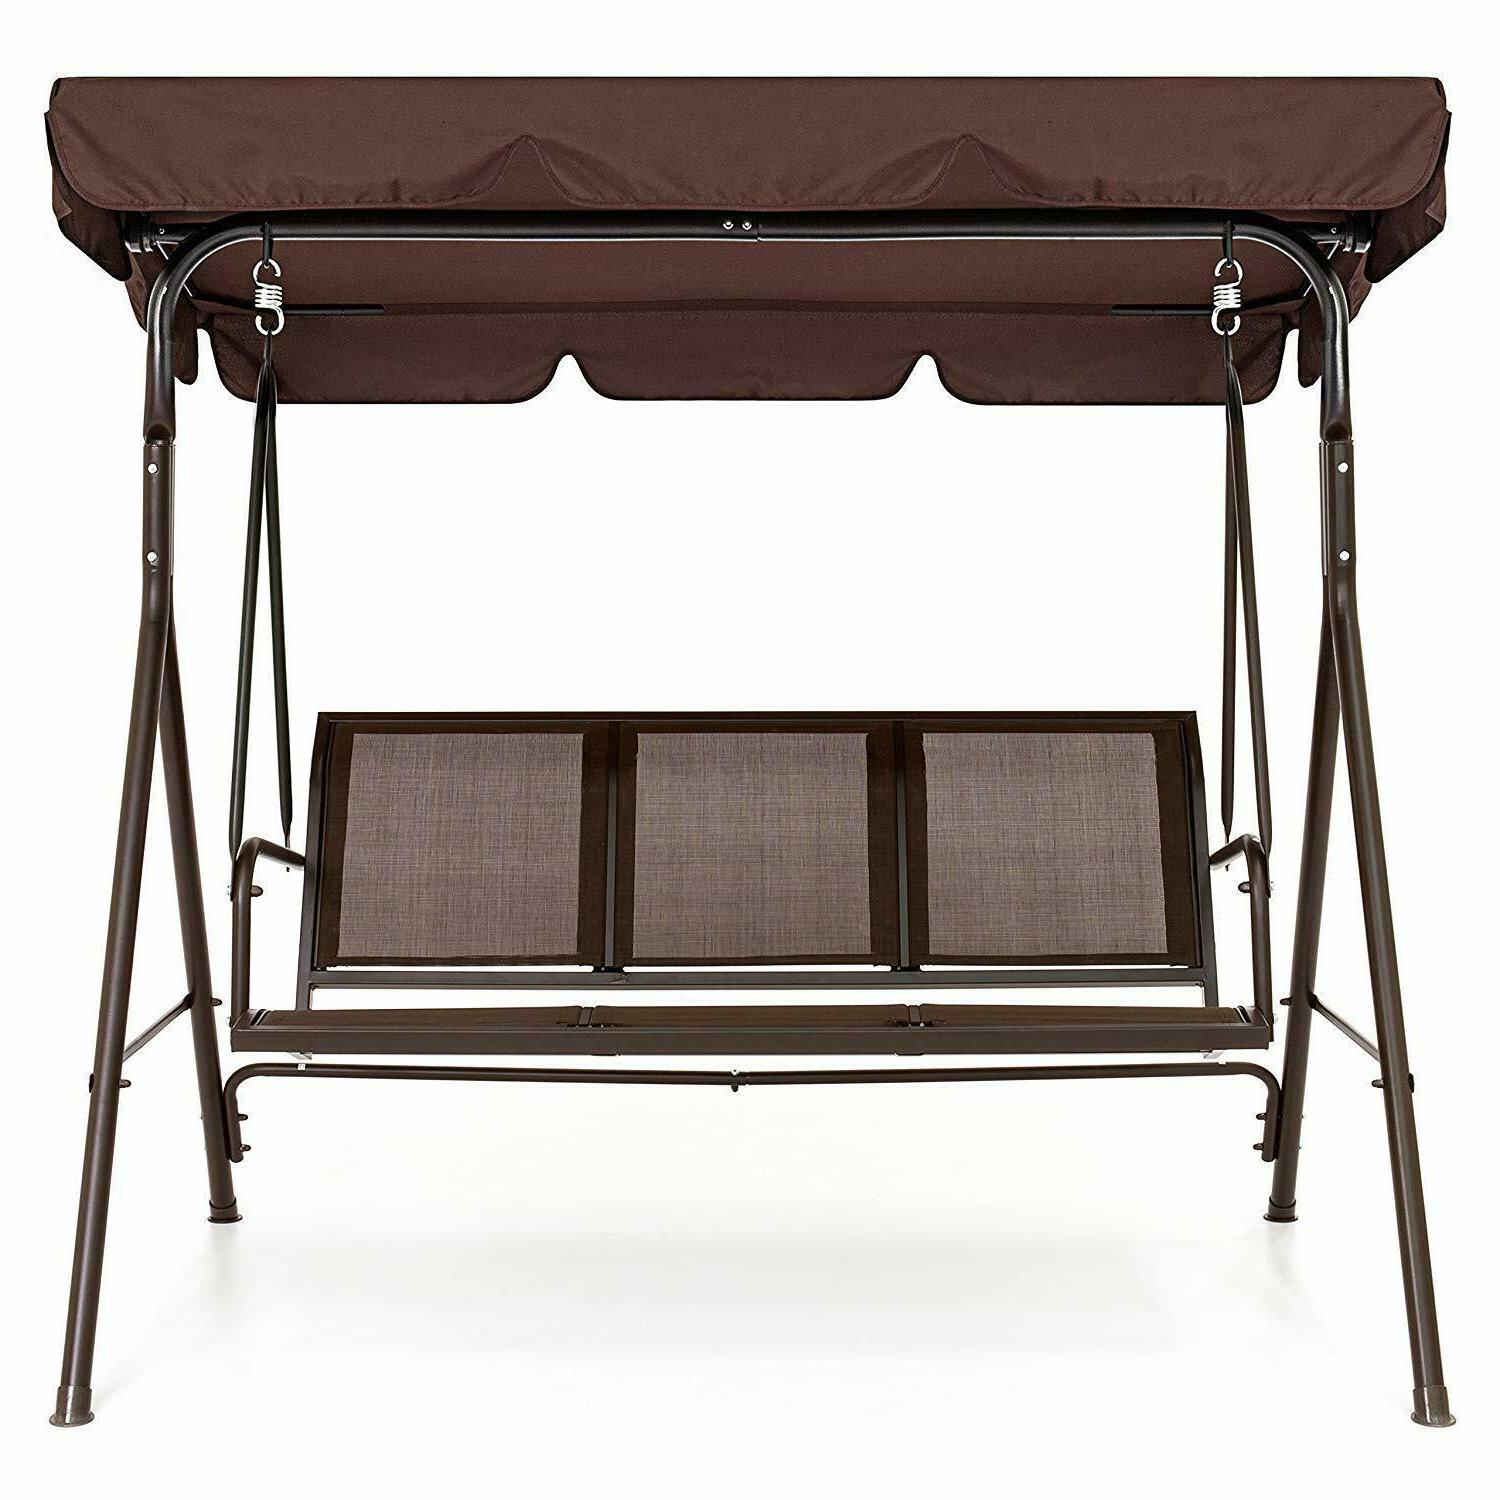 Best Choice Products 2-Person Outdoor Convertible Canopy Por